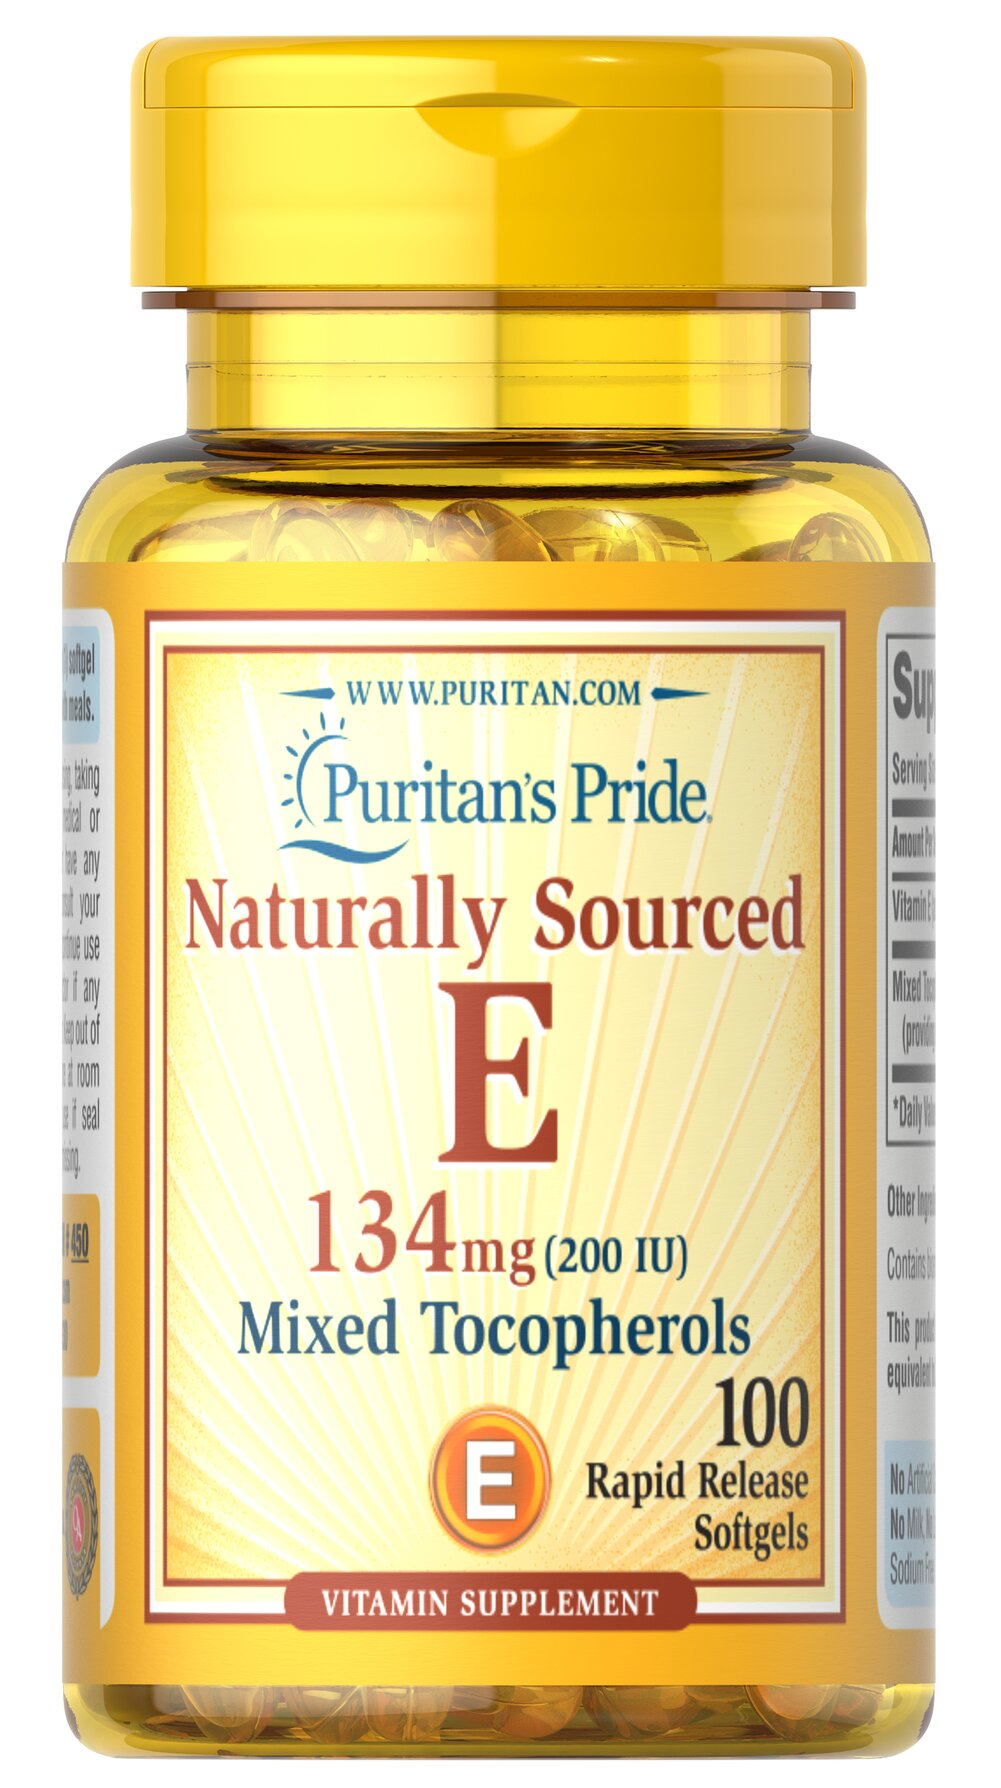 Vitamin E-200 iu Mixed Tocopherols Natural <p><strong>Vitamin E</strong> promotes immune function and helps support cardiovascular health.** <strong>Vitamin E </strong>is also a powerful <strong>antioxidant</strong> that helps fight cell-damaging free radicals in the body.** Studies have shown that oxidative stress caused by free radicals may contribute to the premature aging of cells.**</p> 100 Softgels 200 IU $11.99